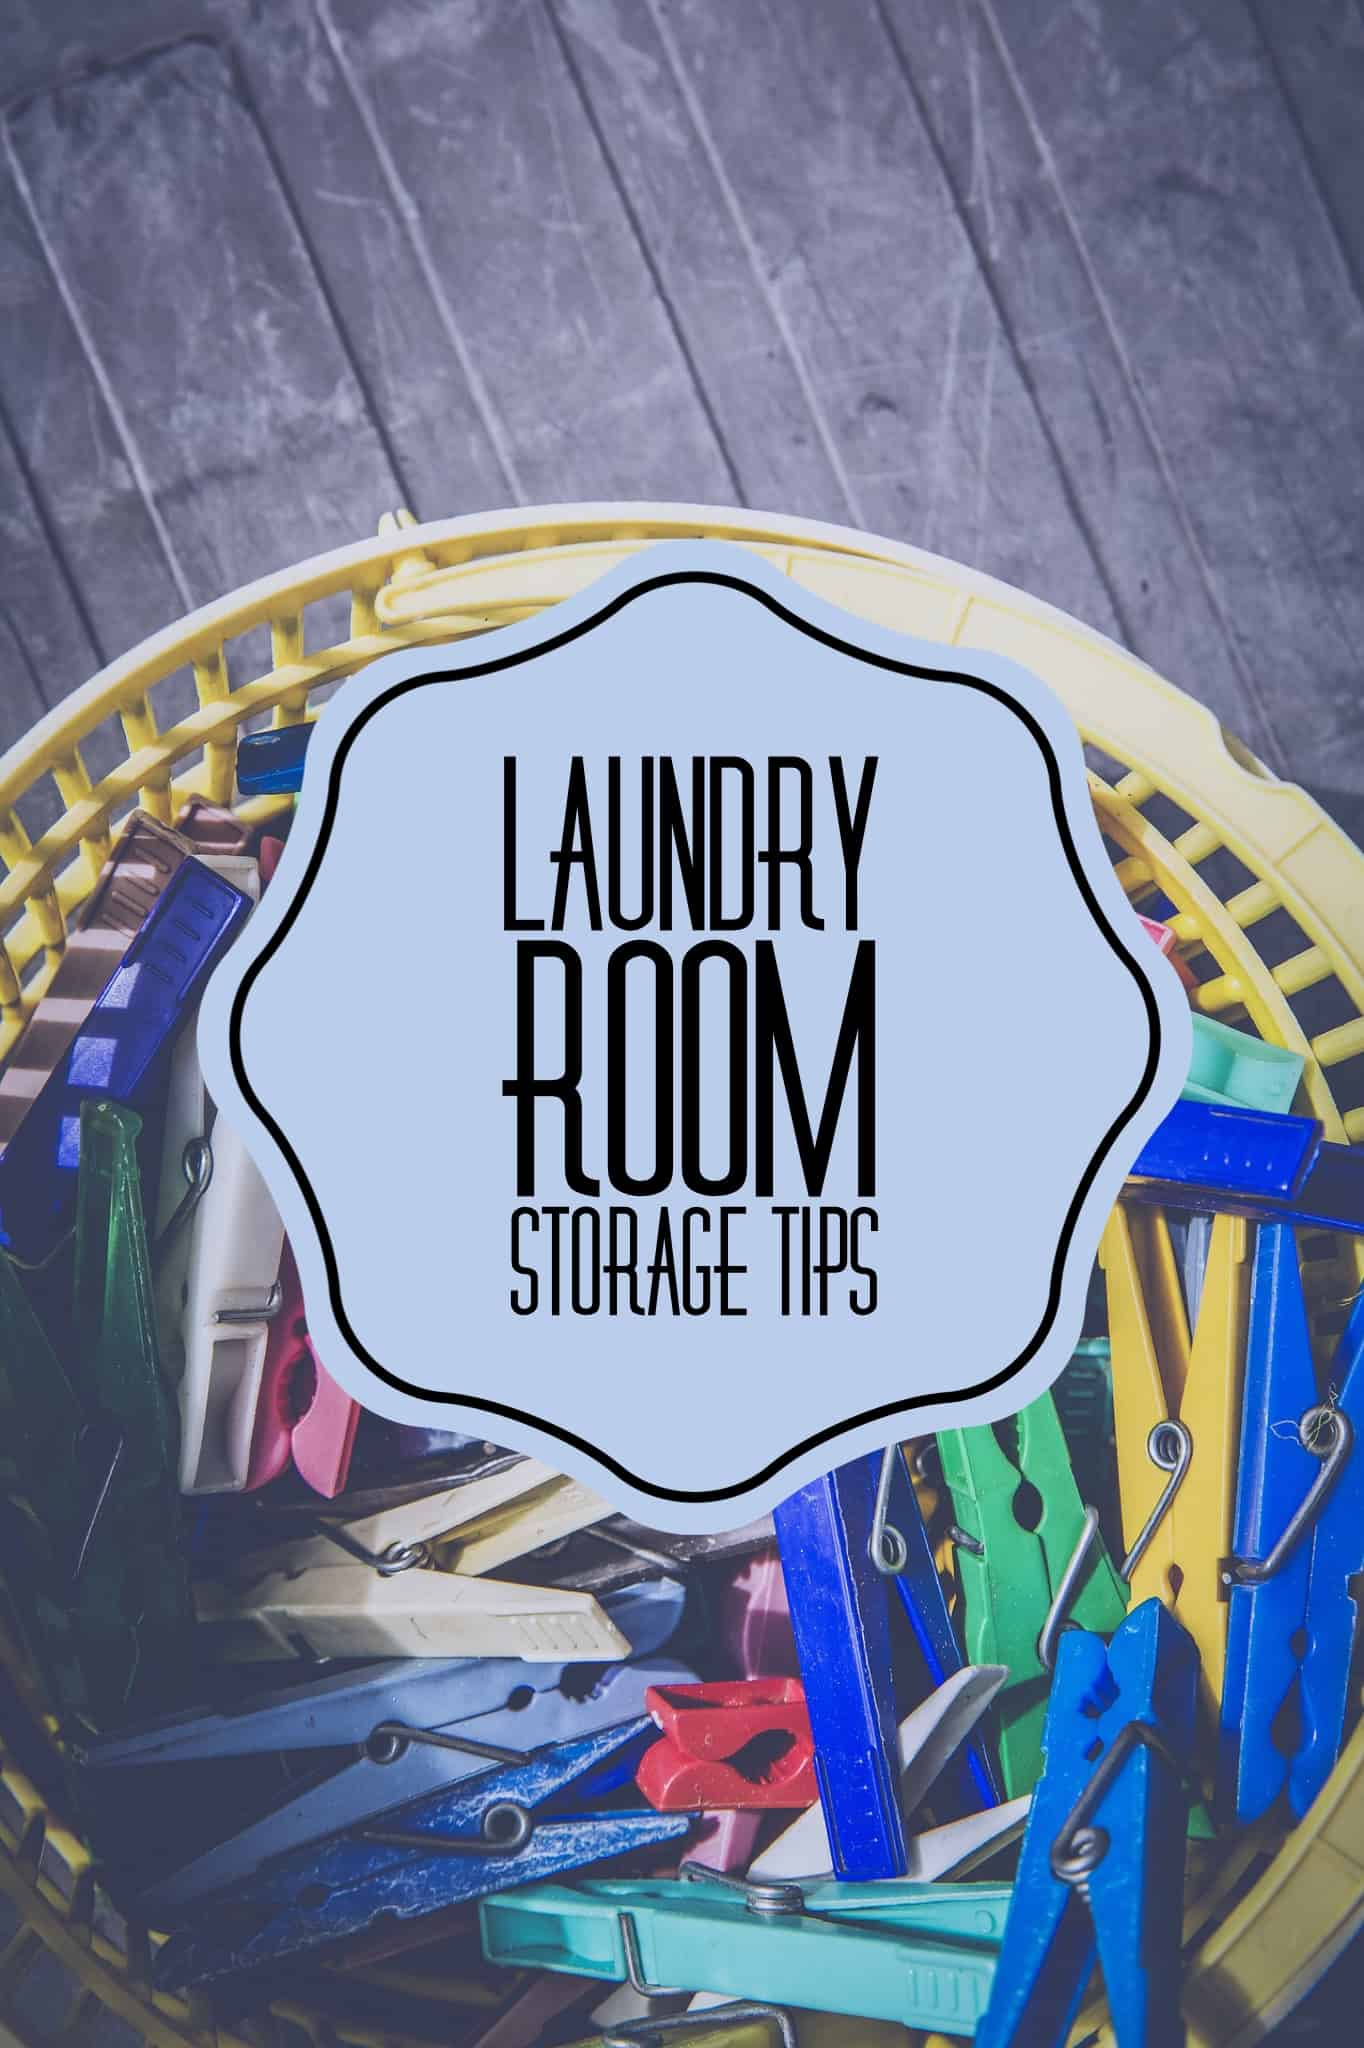 Laundry Room Storage Tips Title